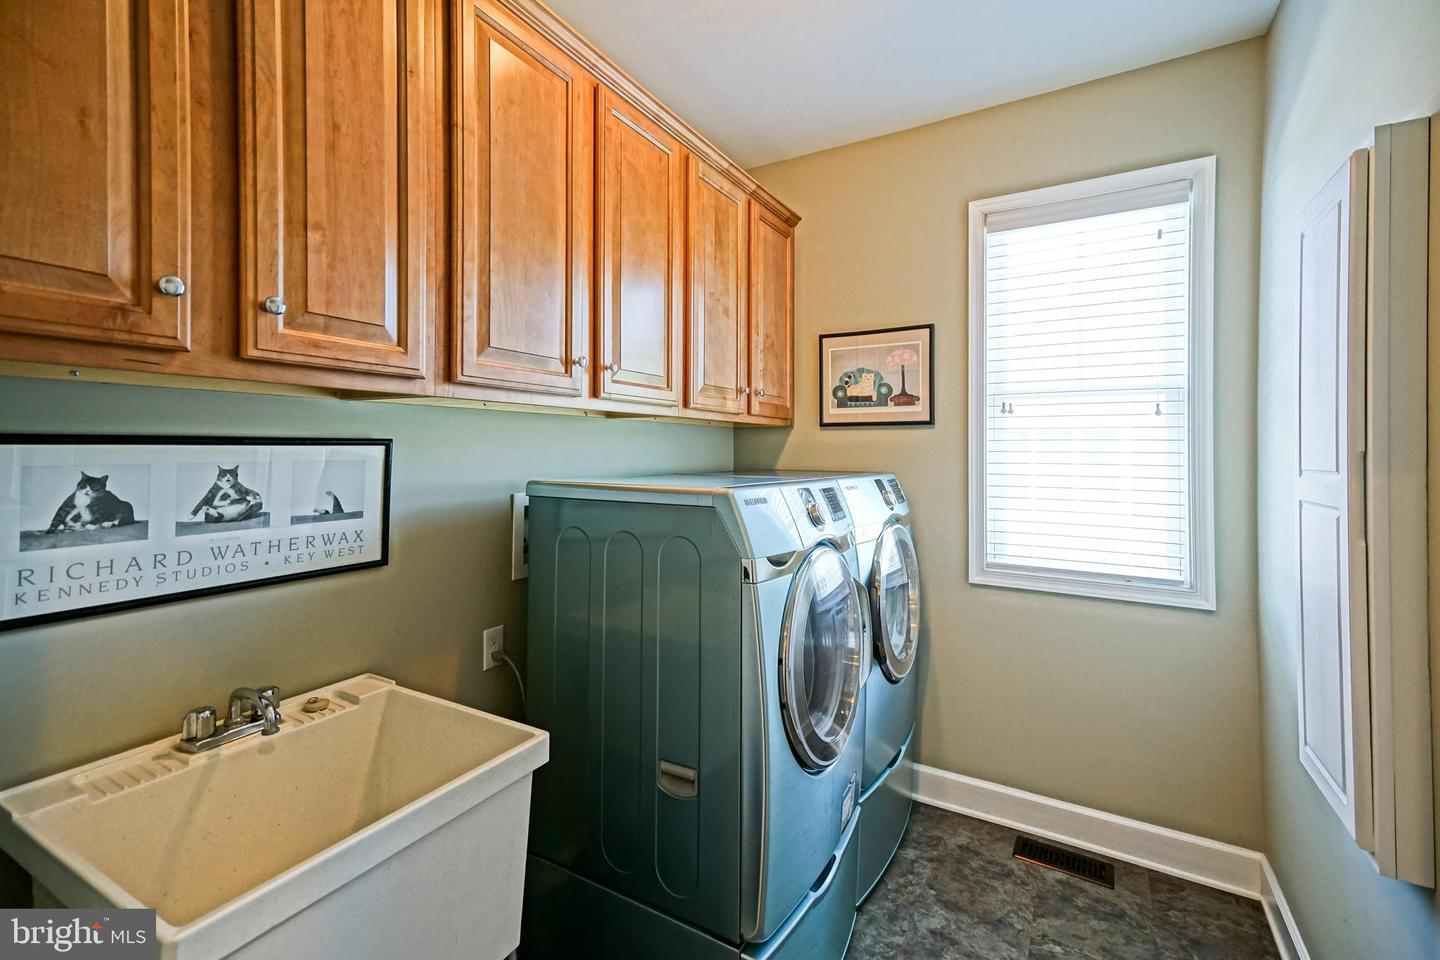 DESU139128-301667382106-2019-08-05-10-43-56 35222 Overfalls Dr N | Lewes, DE Real Estate For Sale | MLS# Desu139128  - Lee Ann Group